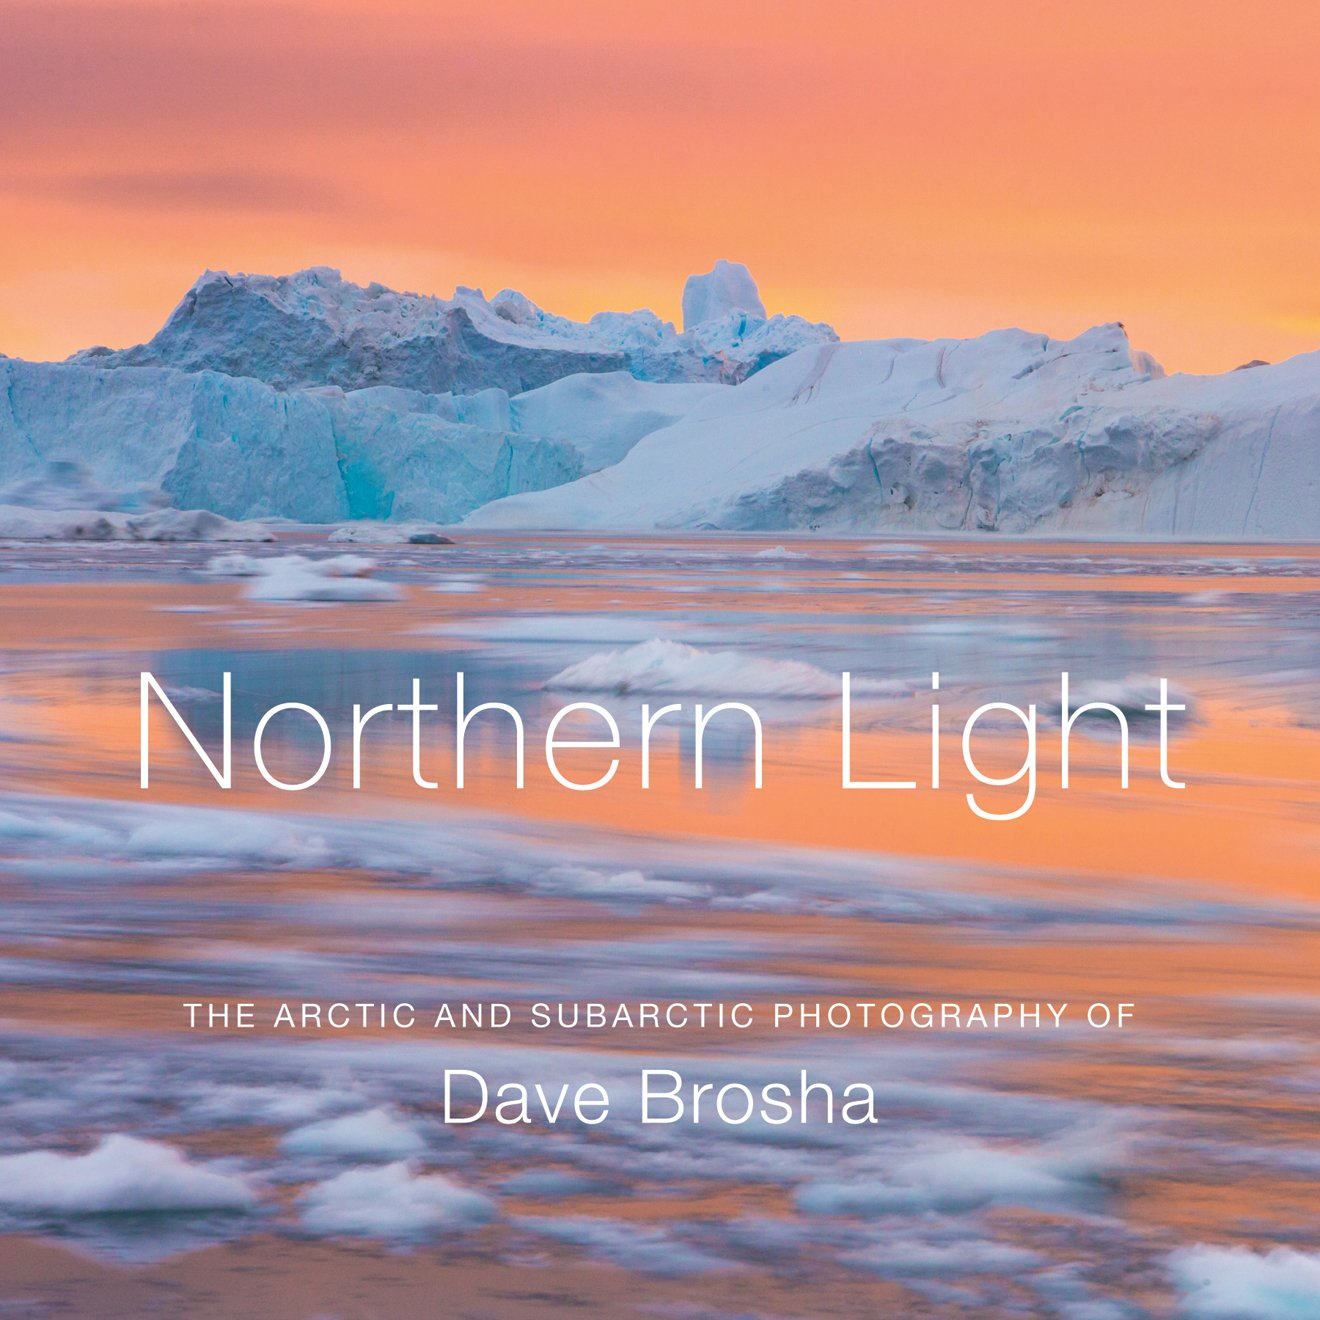 Northern Light: The Arctic and Subarctic Photography of Dave Brosha by Rocky Mountain Books